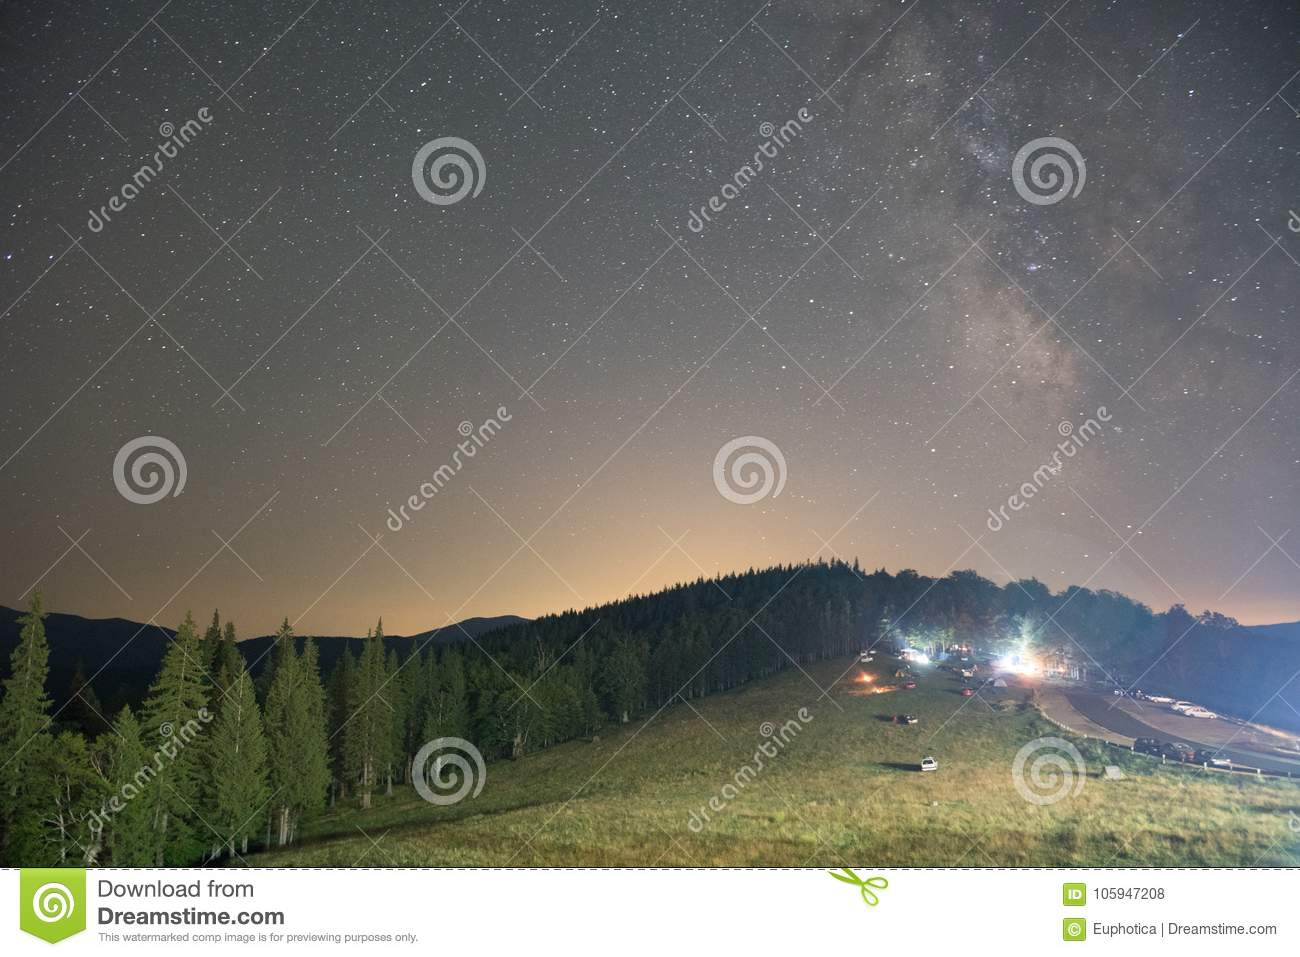 Spruce forest and lit houses at night, visible Milky Way galaxy, clear sky, long exposure